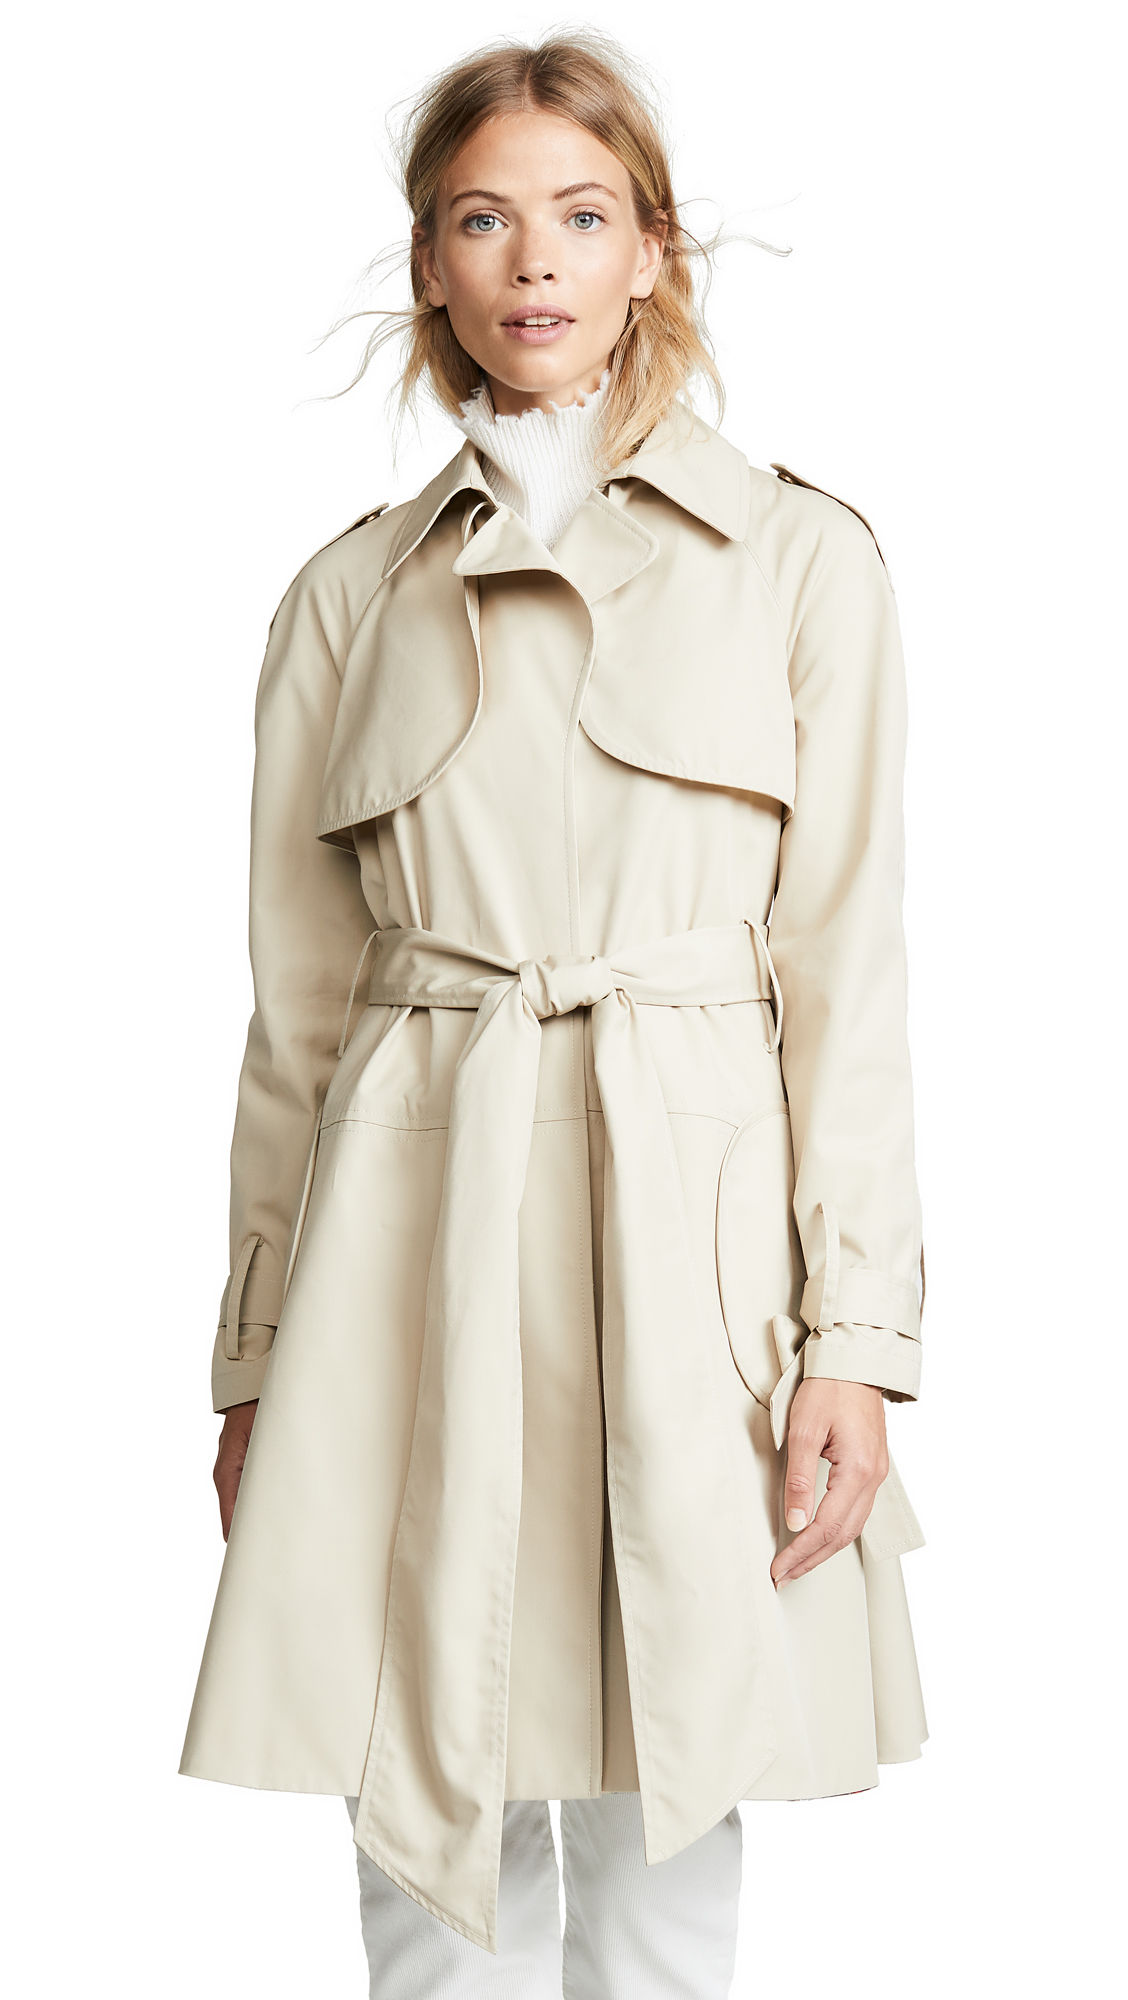 HARVEY FAIRCLOTH Trench Coat in Khaki